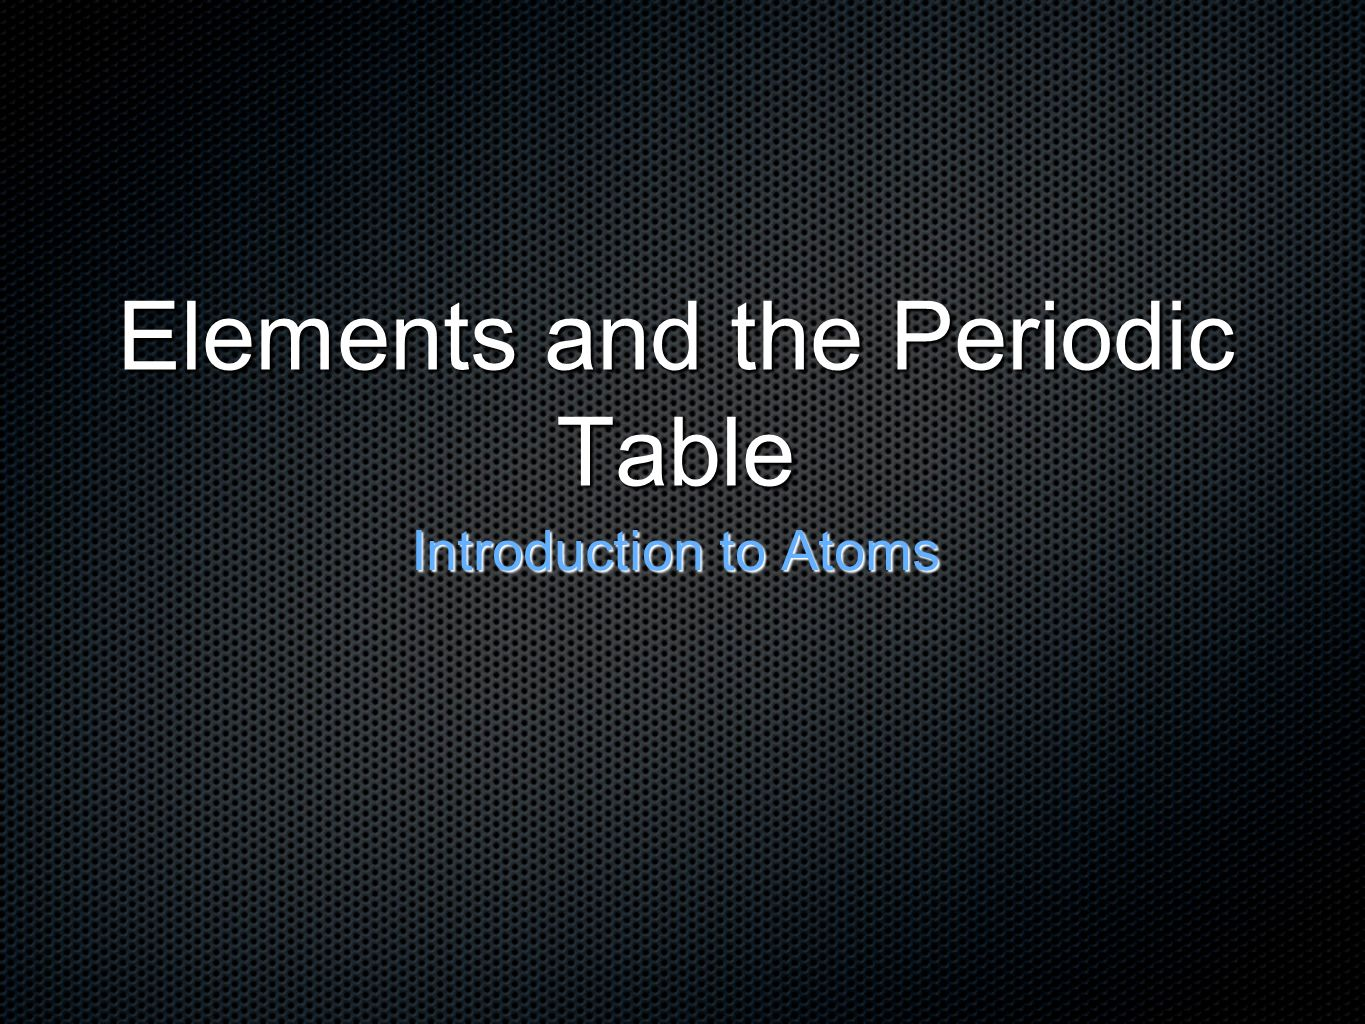 Elements and the periodic table introduction to atoms ppt download 1 elements and the periodic table introduction to atoms gamestrikefo Choice Image